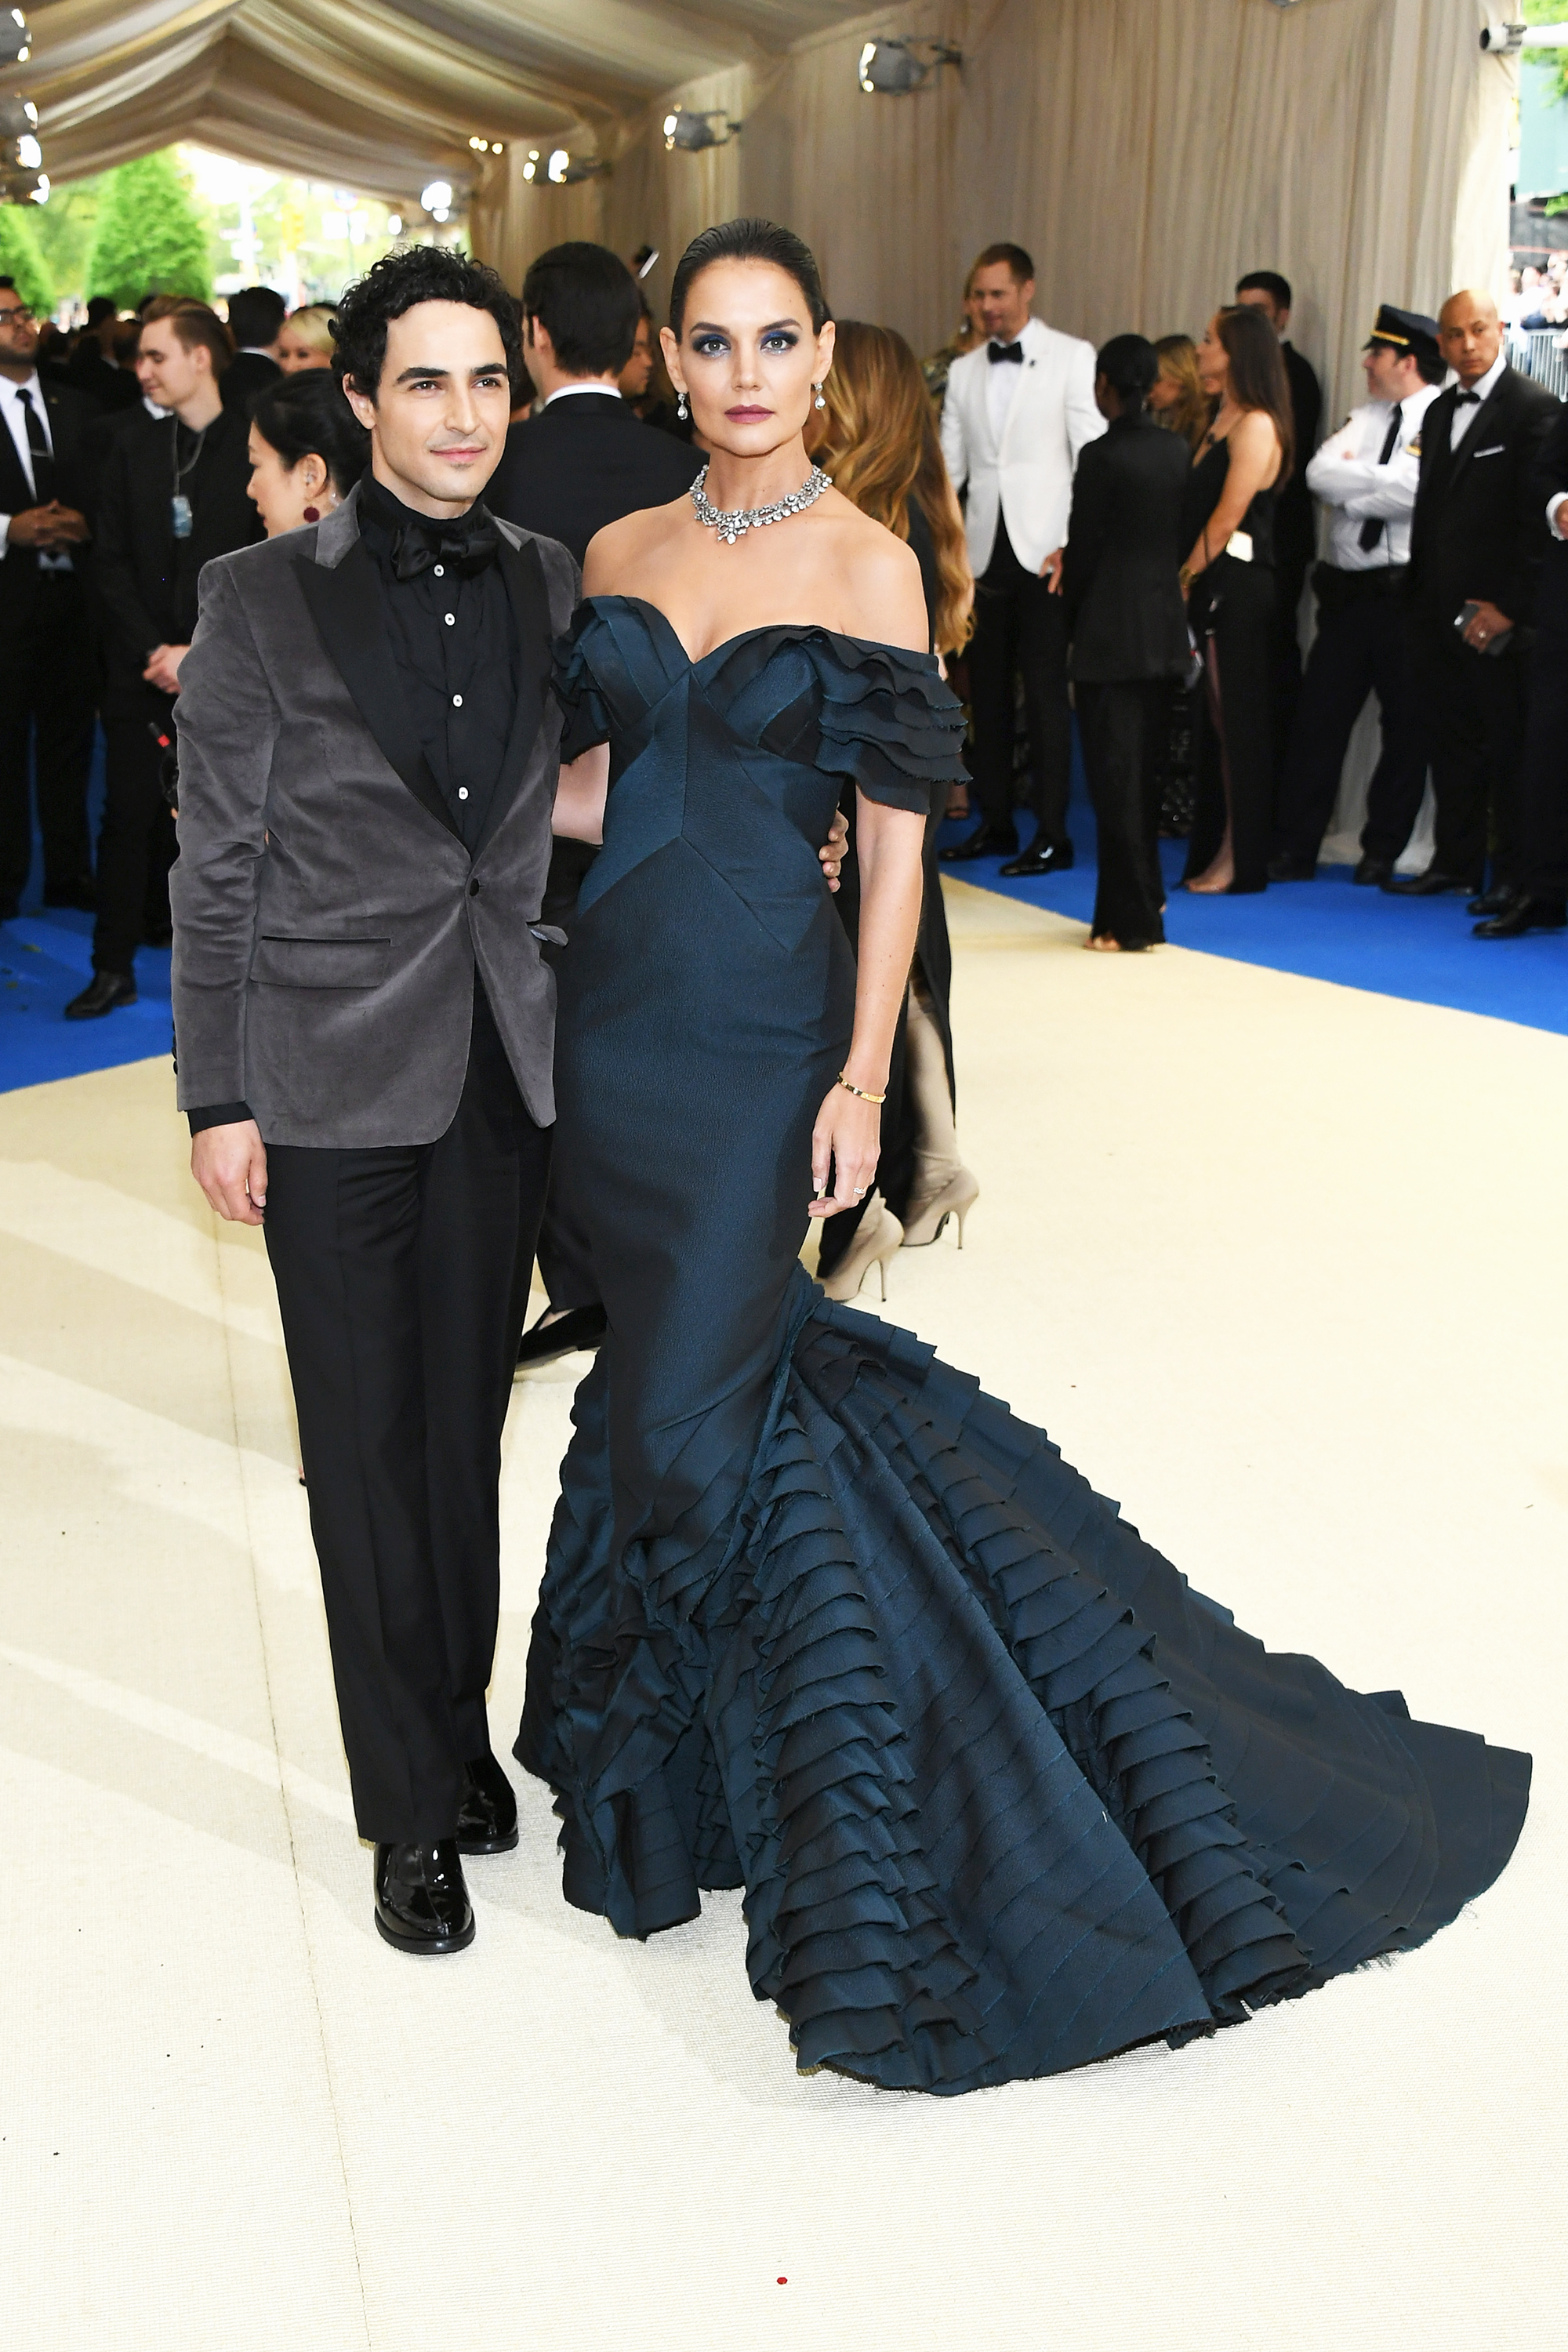 Zac Posen and Katie Holmes attends The Metropolitan Museum of Art's Costume Institute benefit gala celebrating the opening of the Rei Kawakubo/Comme des Garçons: Art of the In-Between exhibition in New York City, on May 1, 2017.